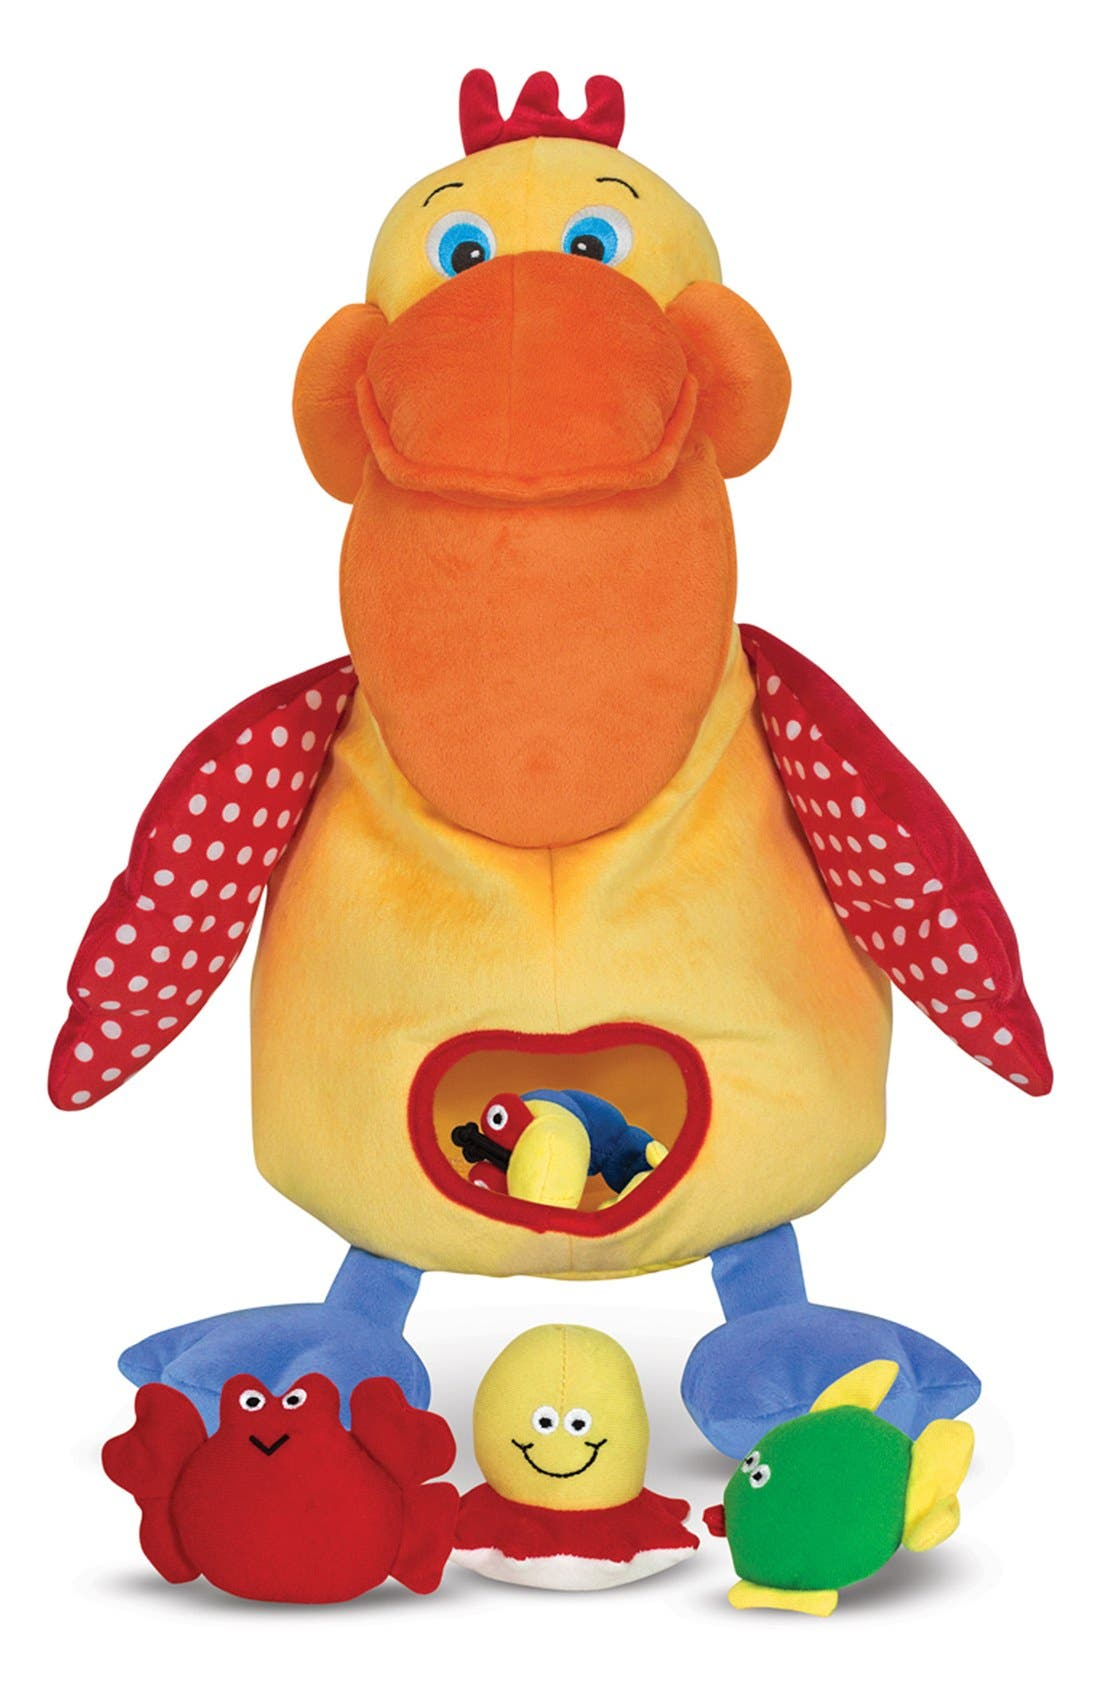 'Hungry Pelican' Plush Toy,                         Main,                         color, Yellow